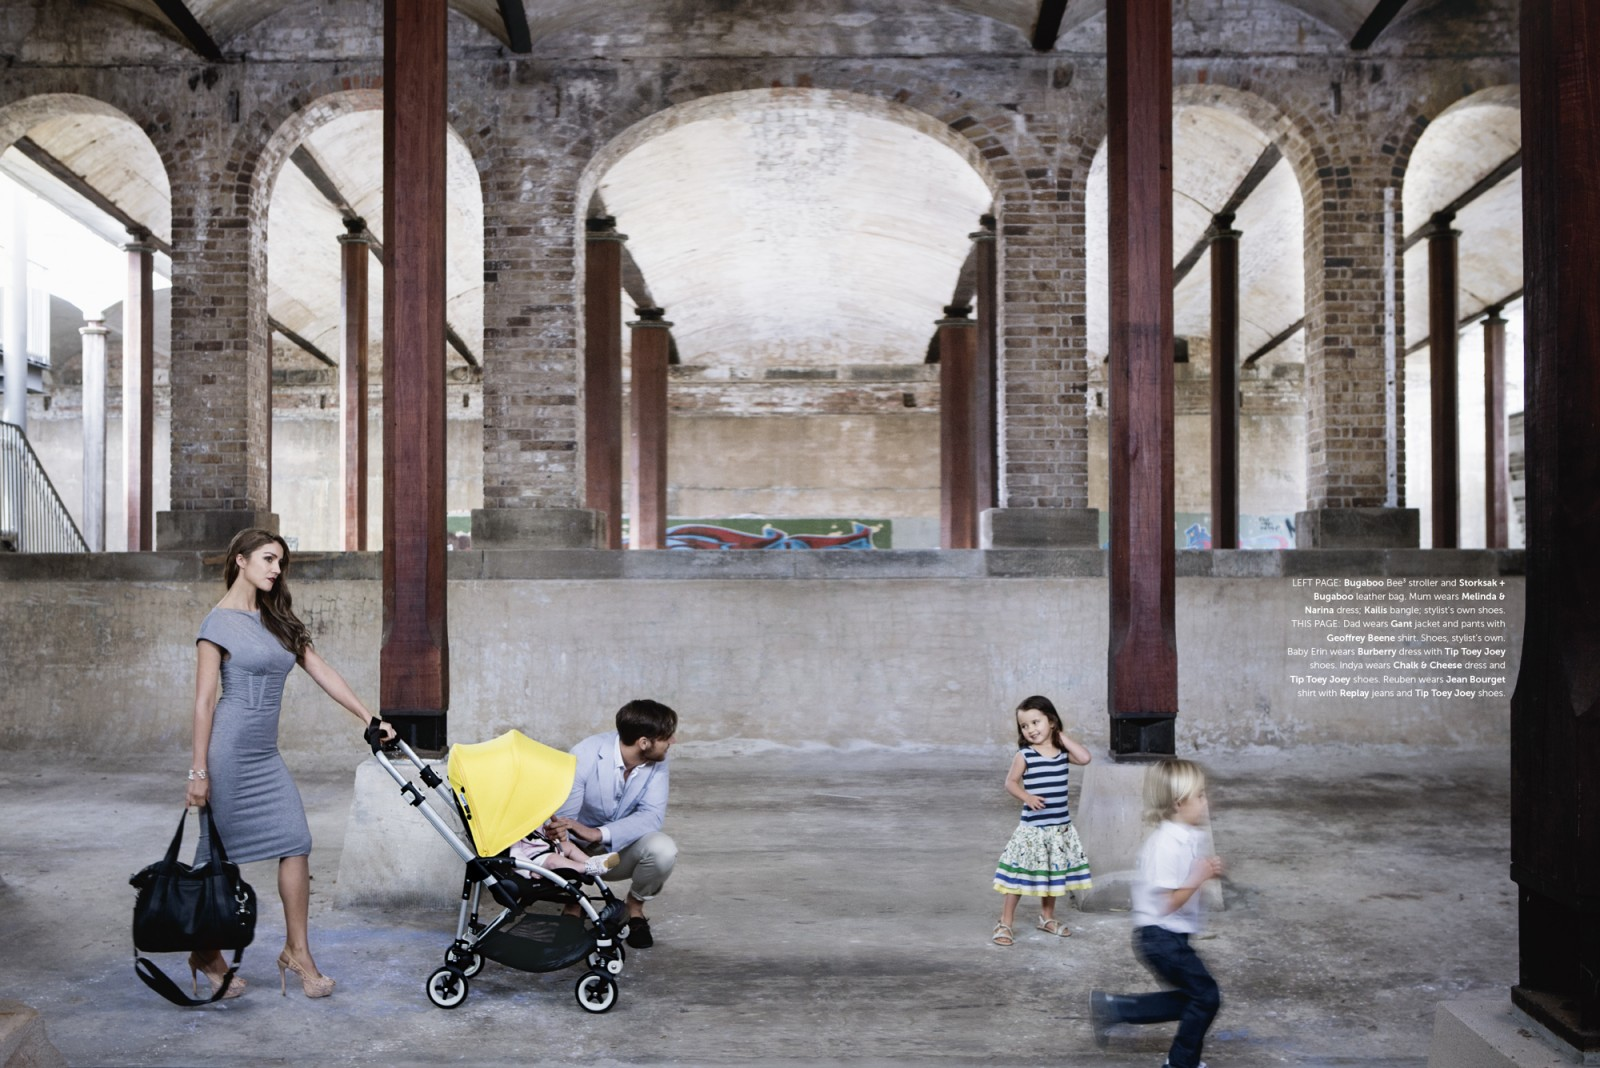 Latest Studio Bambini kids fashion editorial photographed by Michelle Young kids and babies fashion advertising photographer. Photographed on location at Paddington Reservoir for kids fashion...